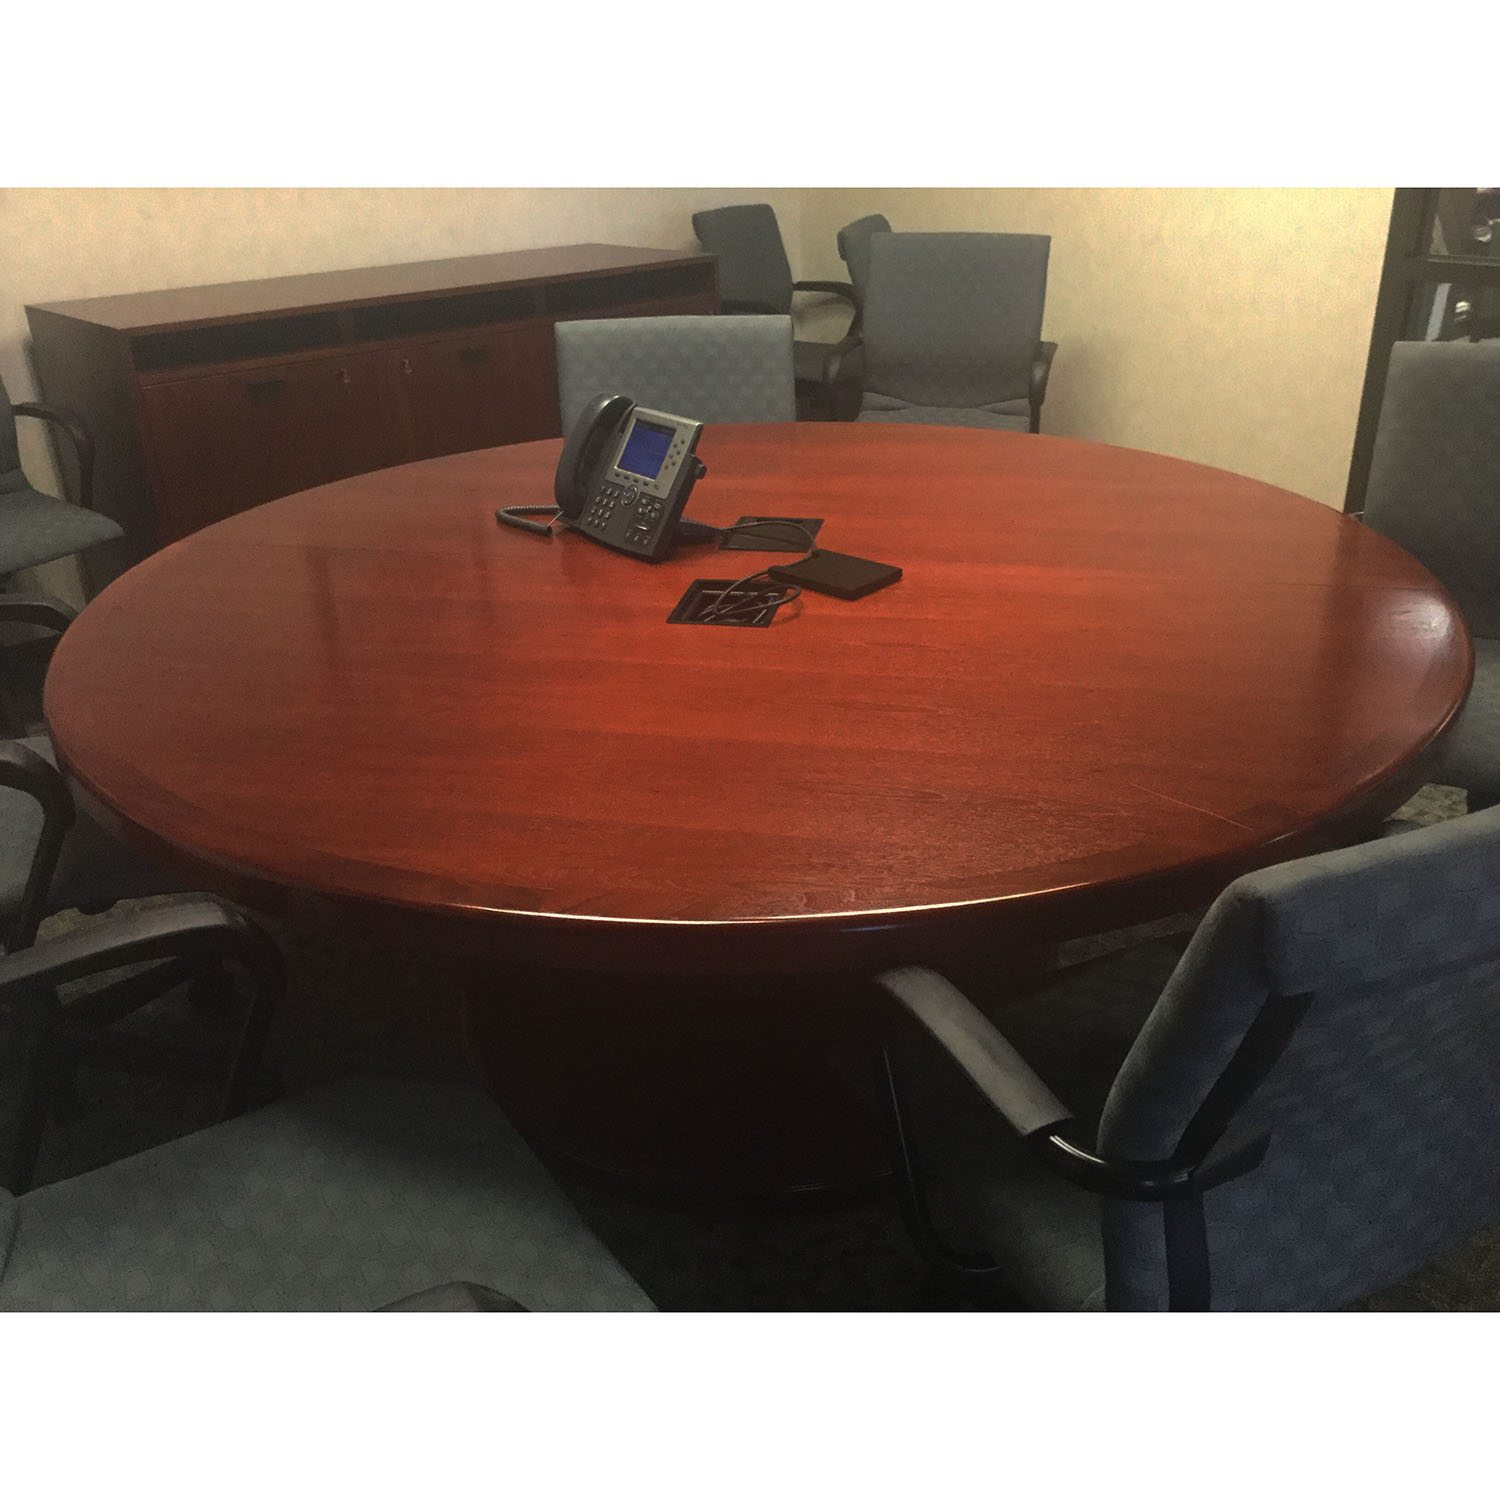 Steelcase Used 72 Inch Round Conference Table, Mahogany